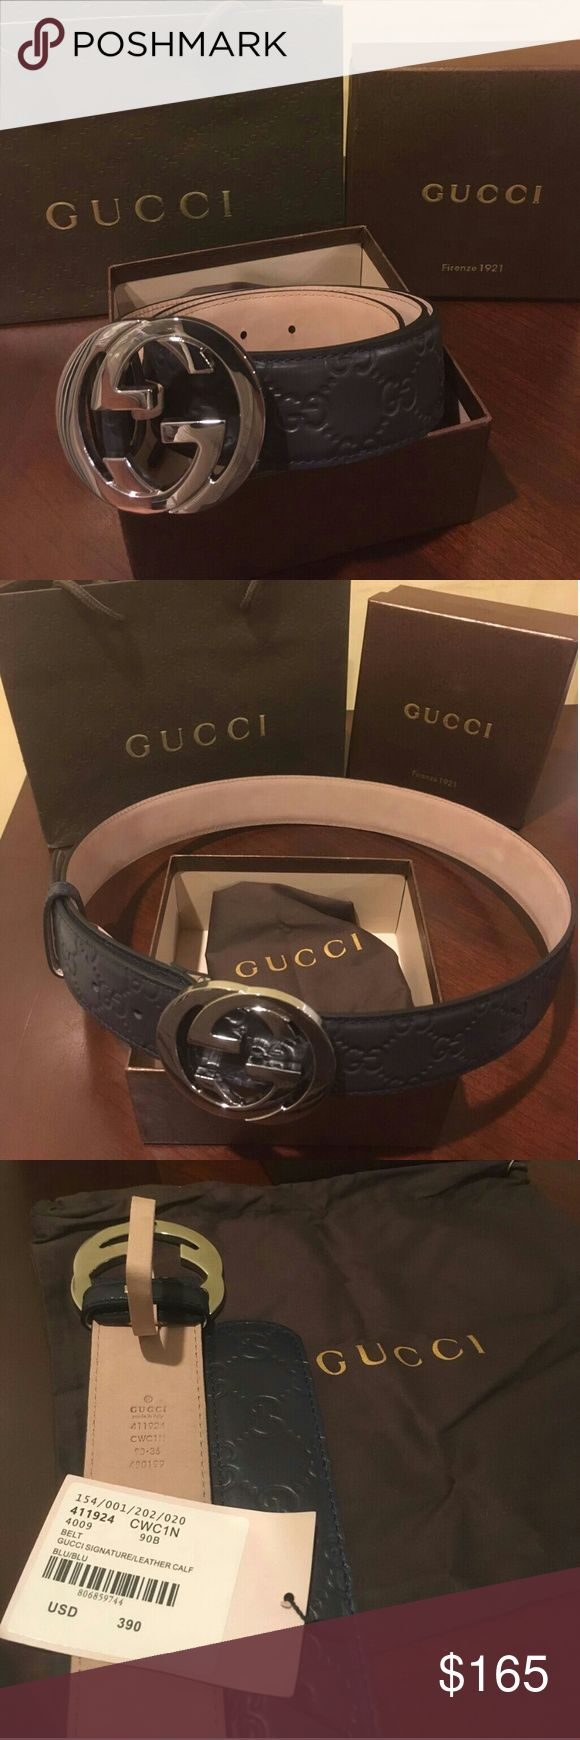 NWT NEW DARK BLUE GUCCI SIGNATURE LEATHER BELT 🔥 100% authentic Gucci belt 🔥 🔥 Dark blue leather belt 🔥 🔥 Interlocking G Silver Buckle 🔥 🔥 Made in a defined print and firm texture 🔥 🔥 Nickel hardware 🔥 🔥 Comes with dust bag, original tags, Gucci box 🔥 🔥 Fast shipping 24hrs 🔥 🔥 Message me for any more sizes 🔥 Gucci Accessories Belts